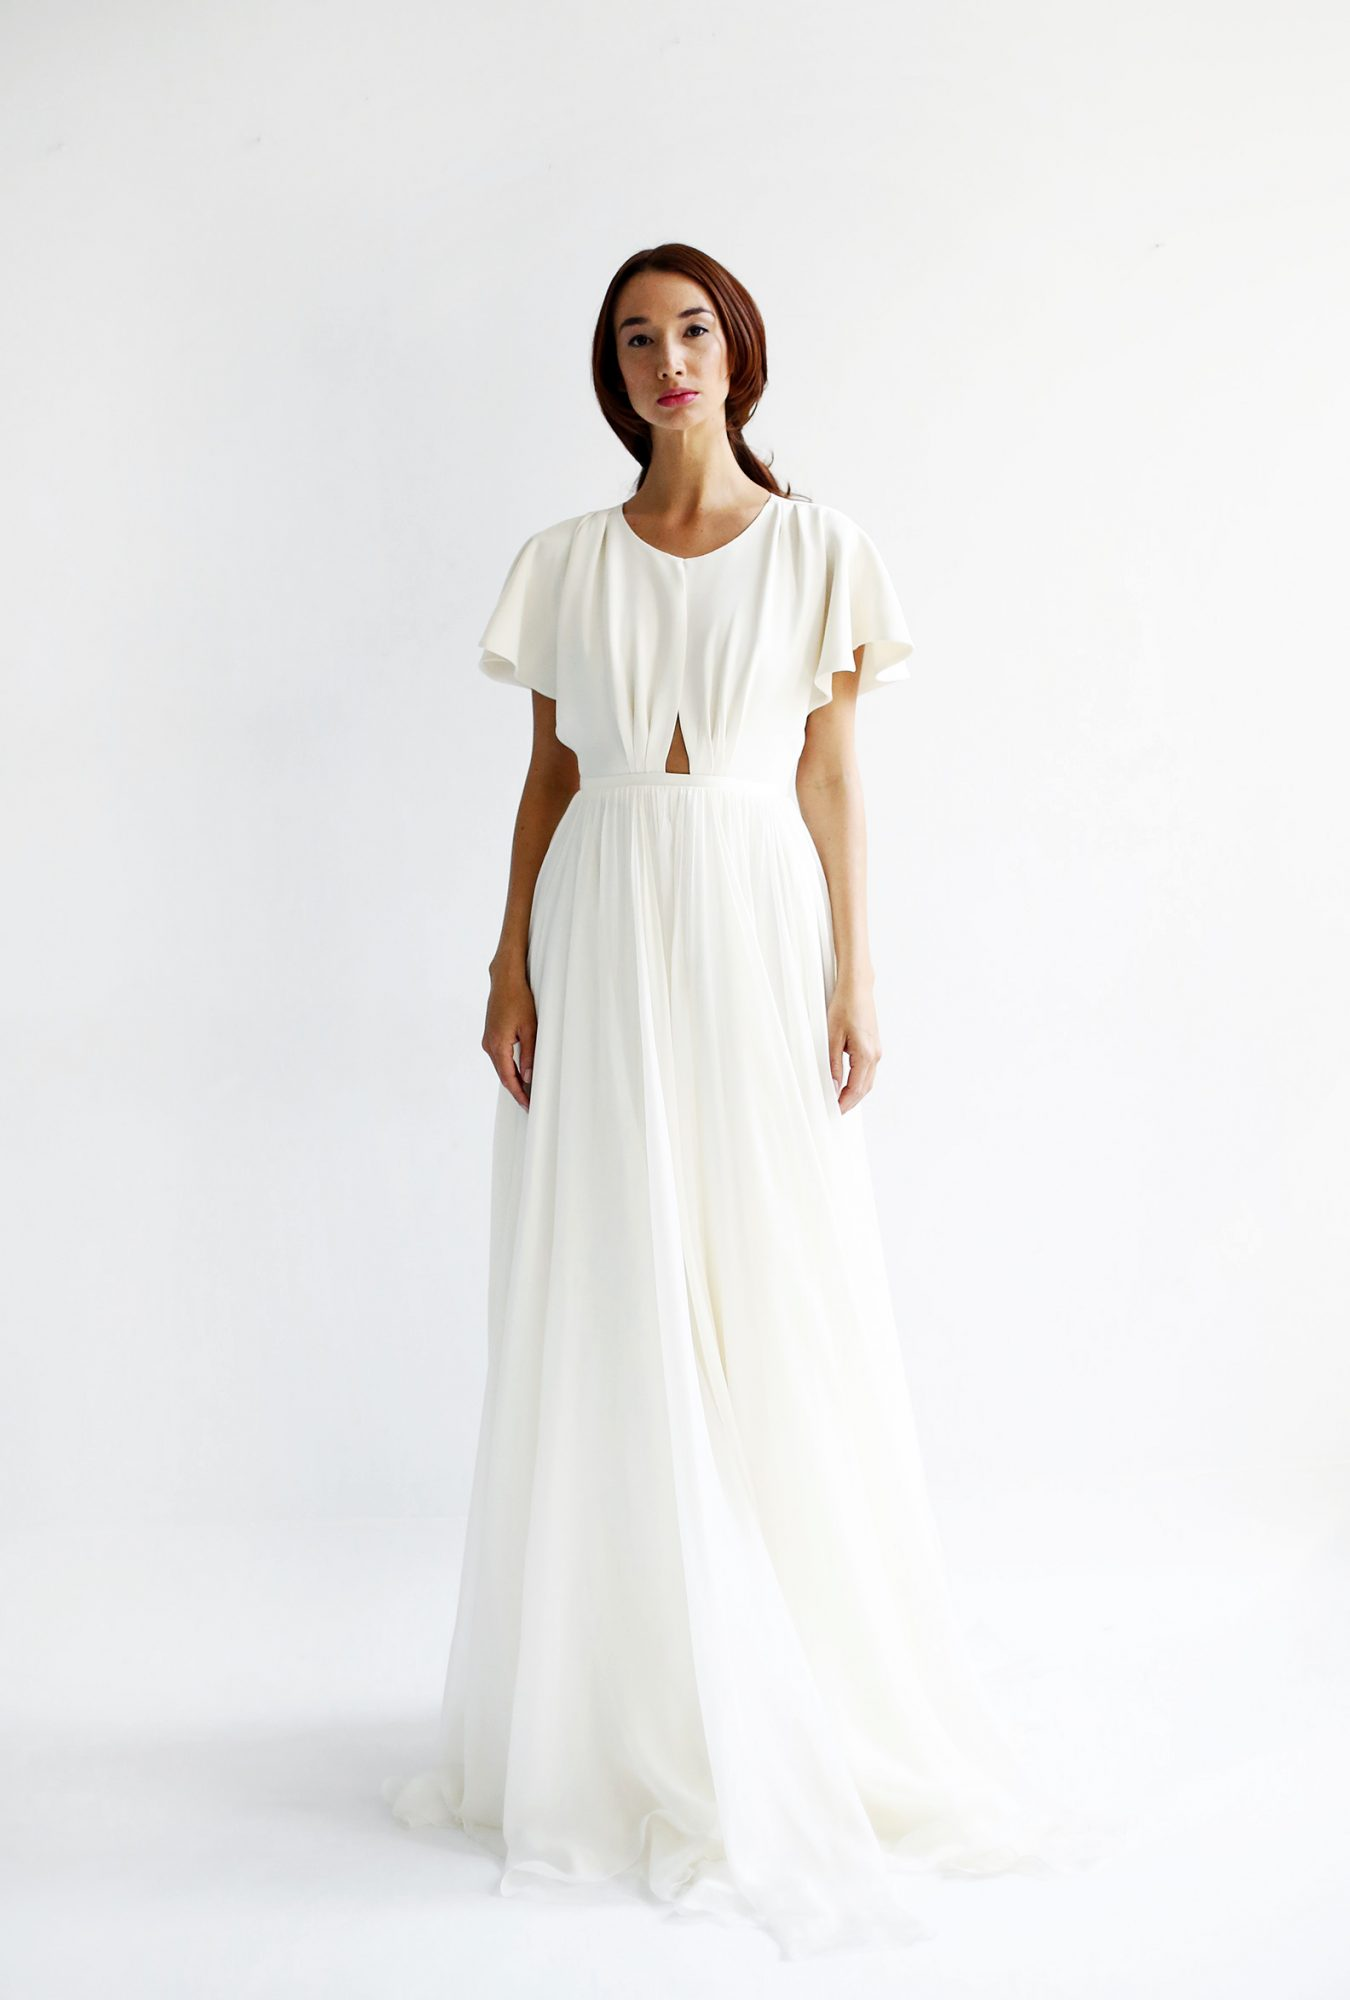 leanne marshall wedding dress spring 2019 short sleeves cut out a-line